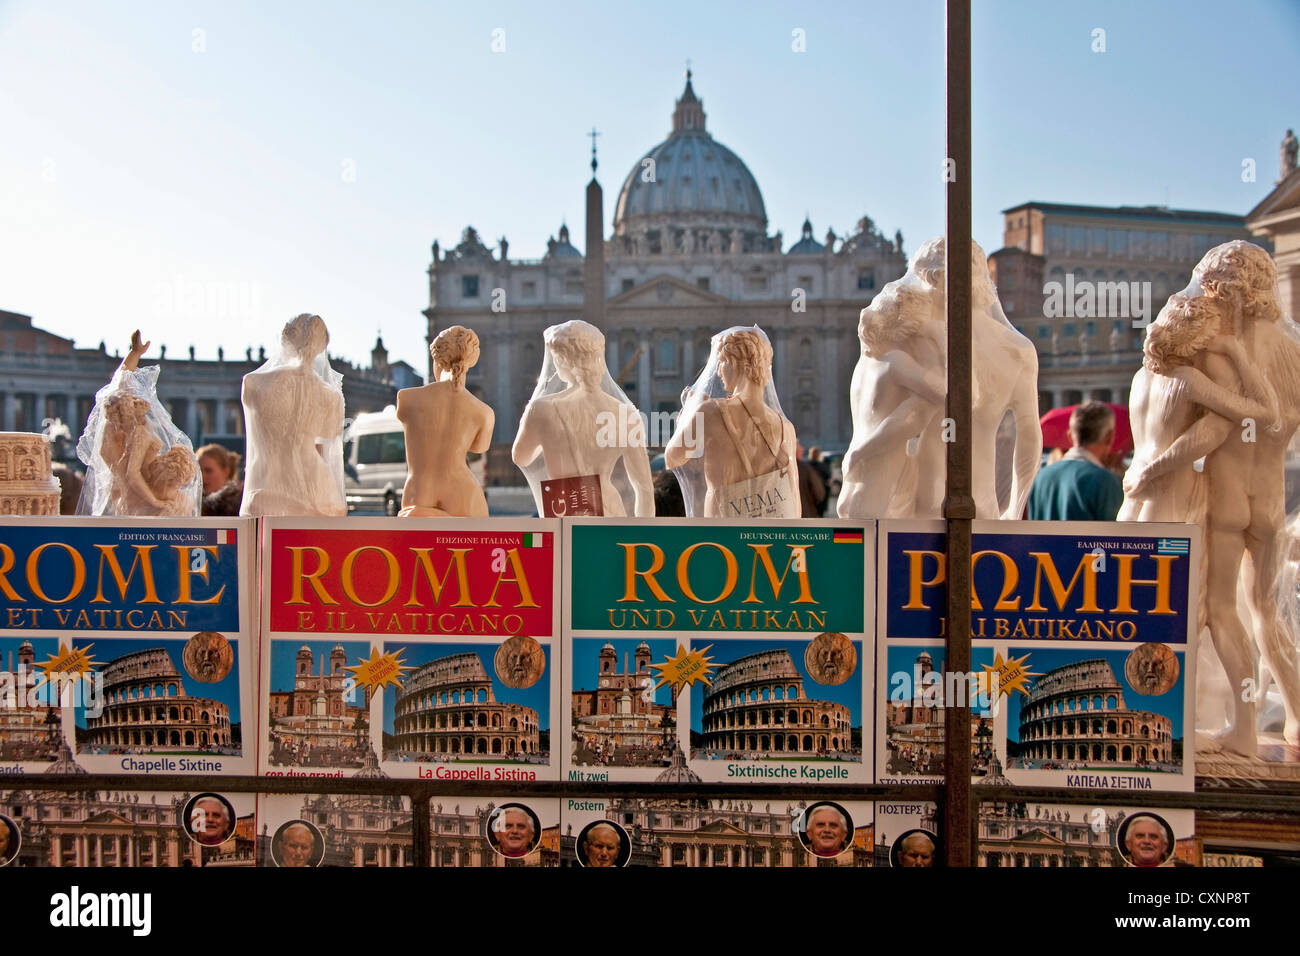 Rome souvenir shop facing St. Peter's Basilica in the Vatican - Stock Image